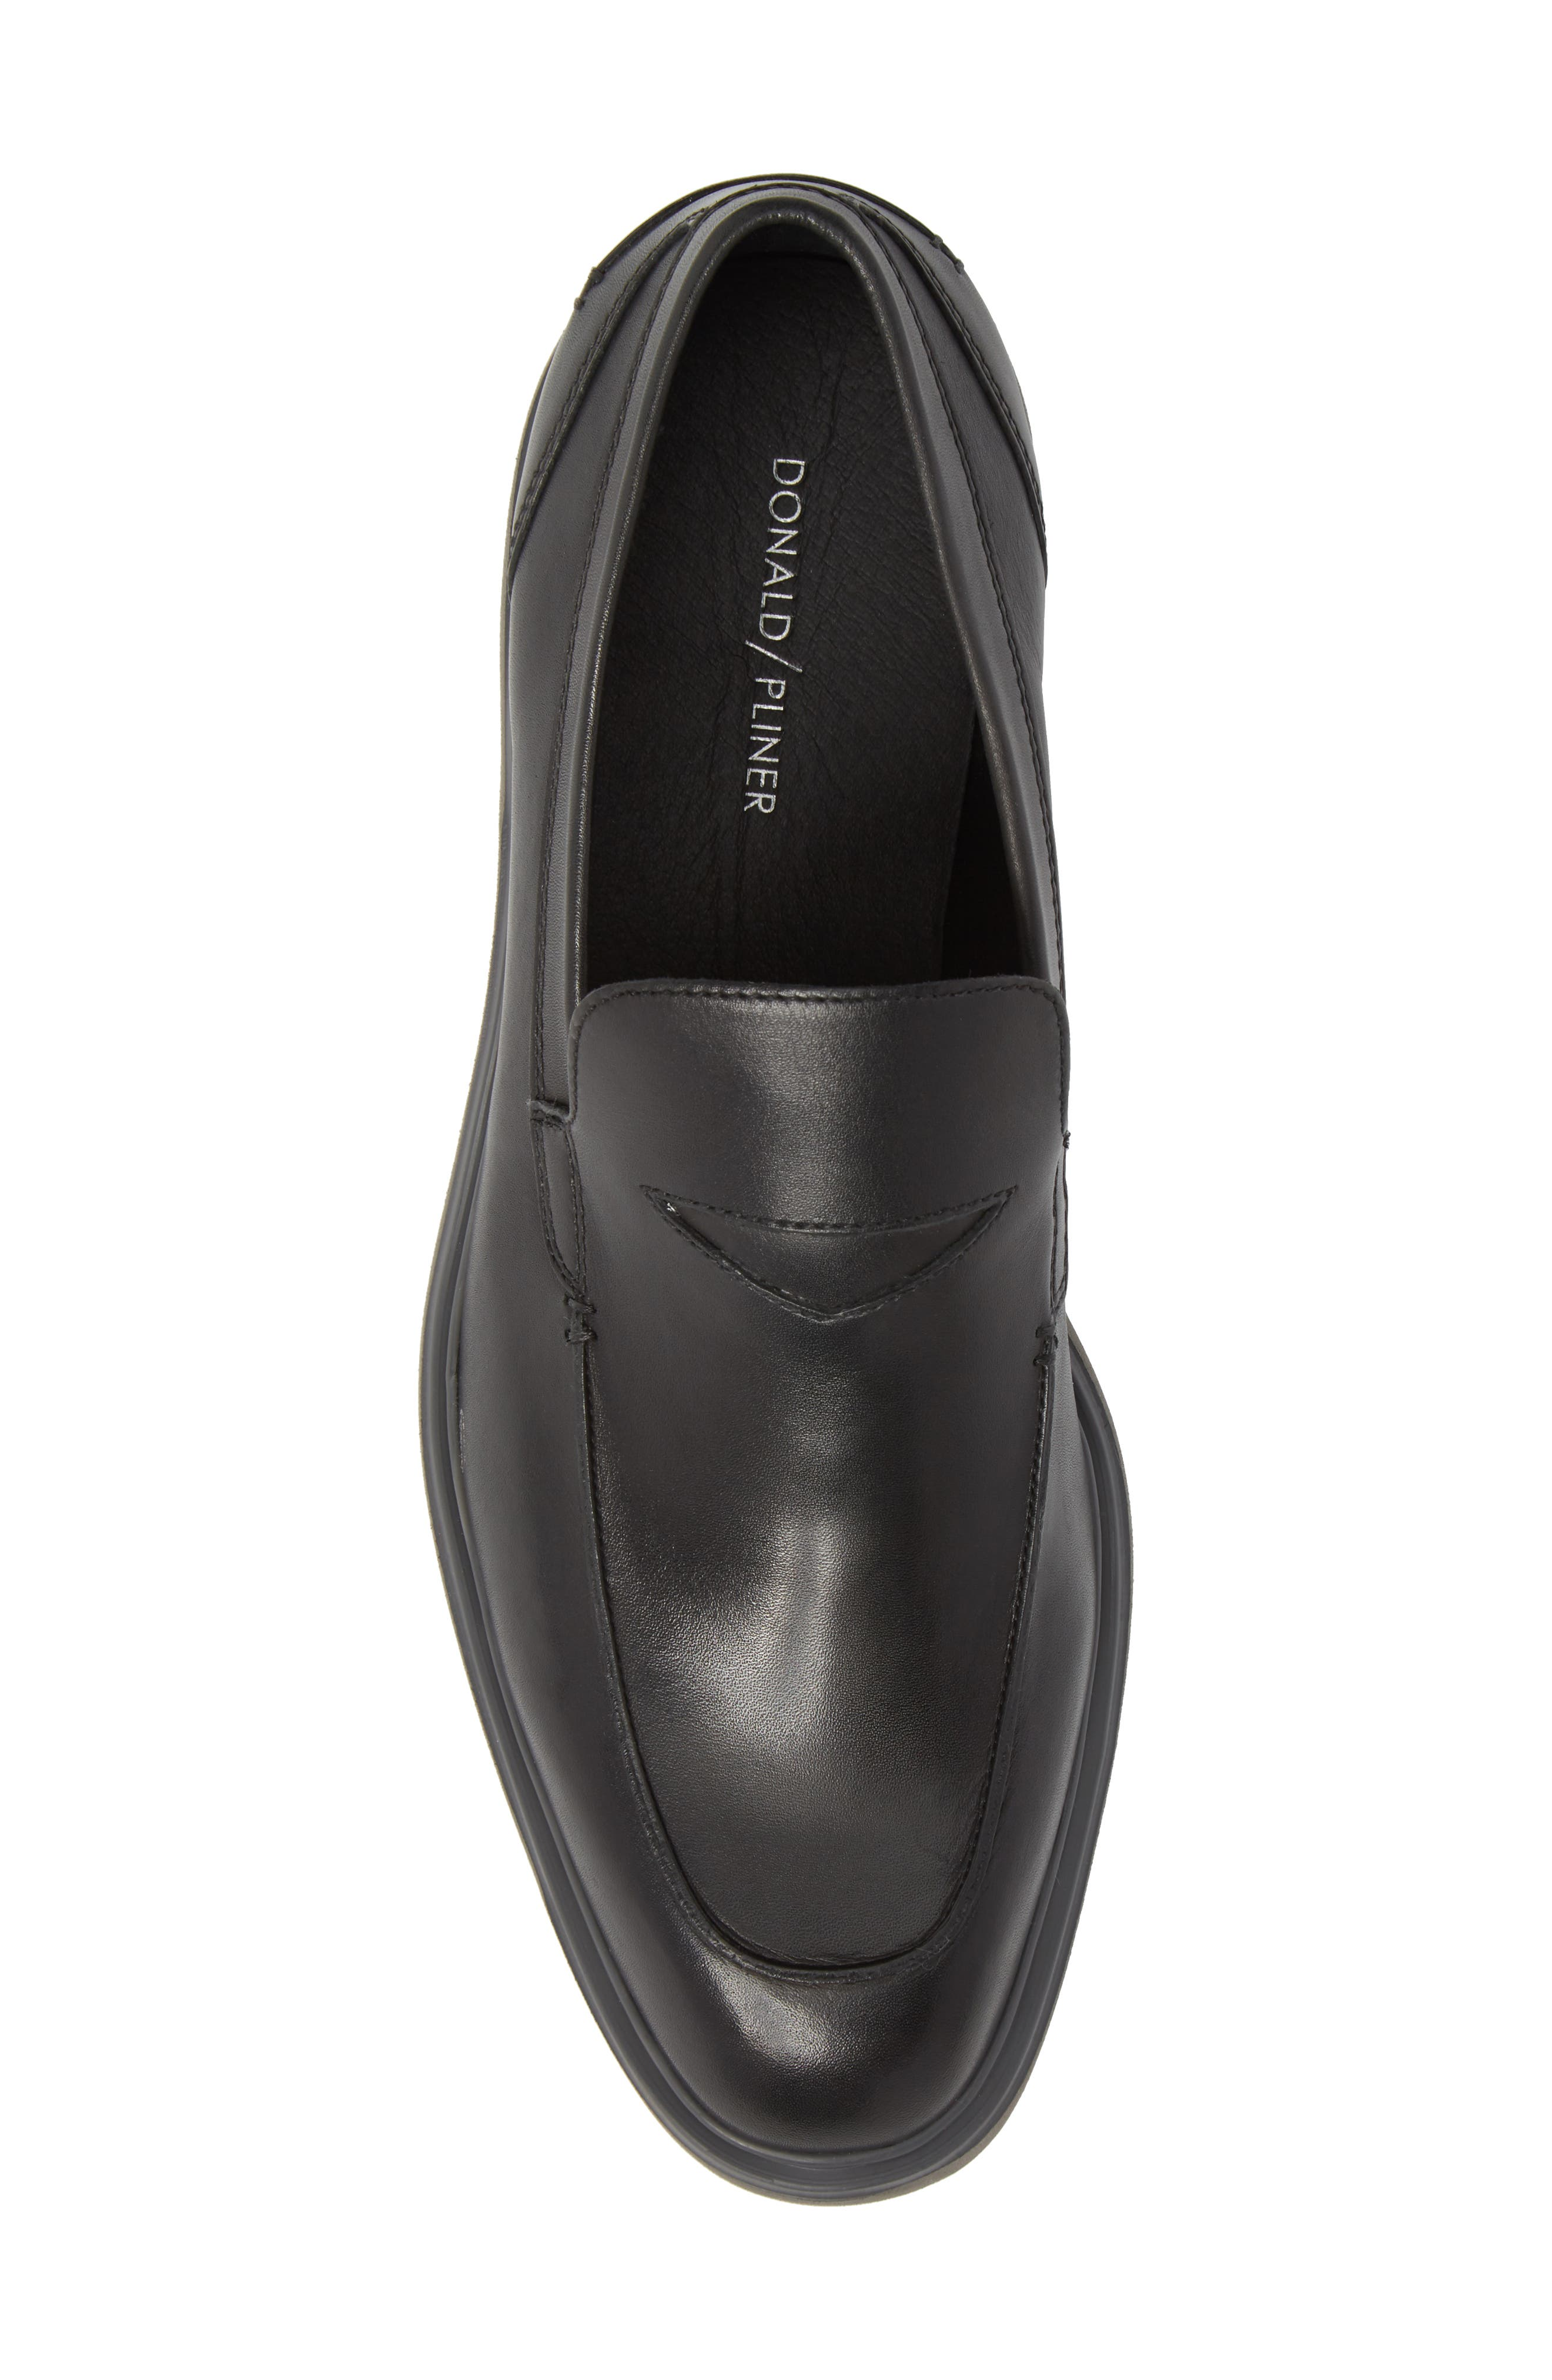 Edwyn Deconstructed Penny Loafer,                             Alternate thumbnail 5, color,                             Black Leather